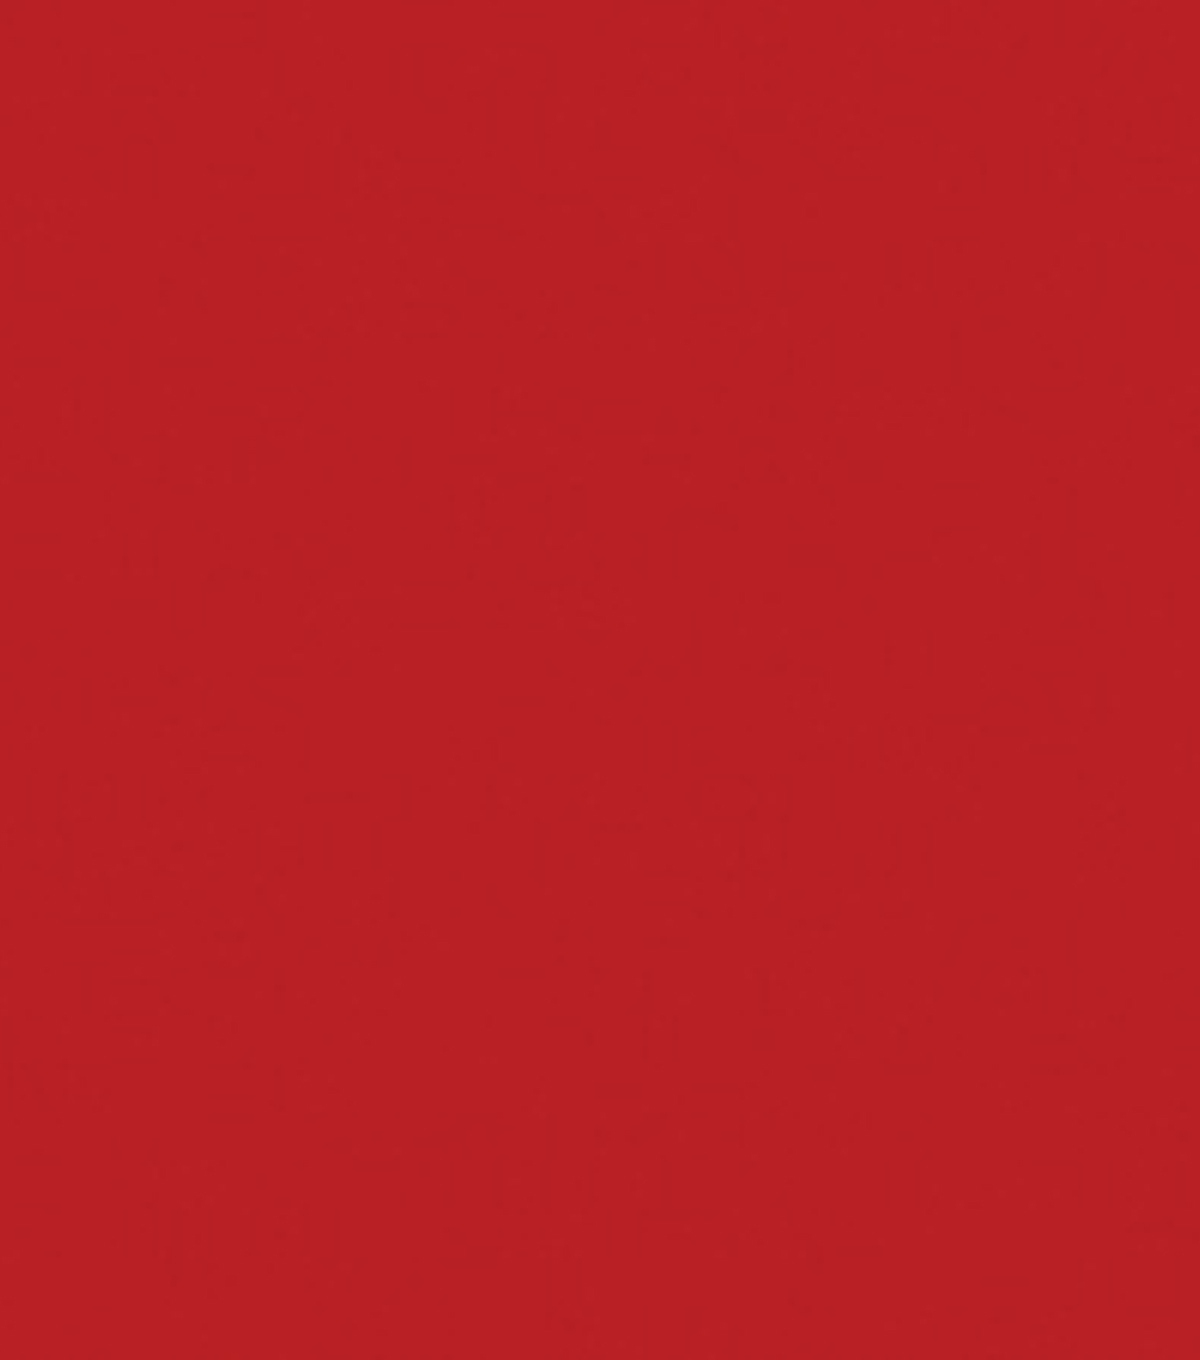 Jacquard 2.25 oz. Neopaque Acrylic Paint-1PK, Red